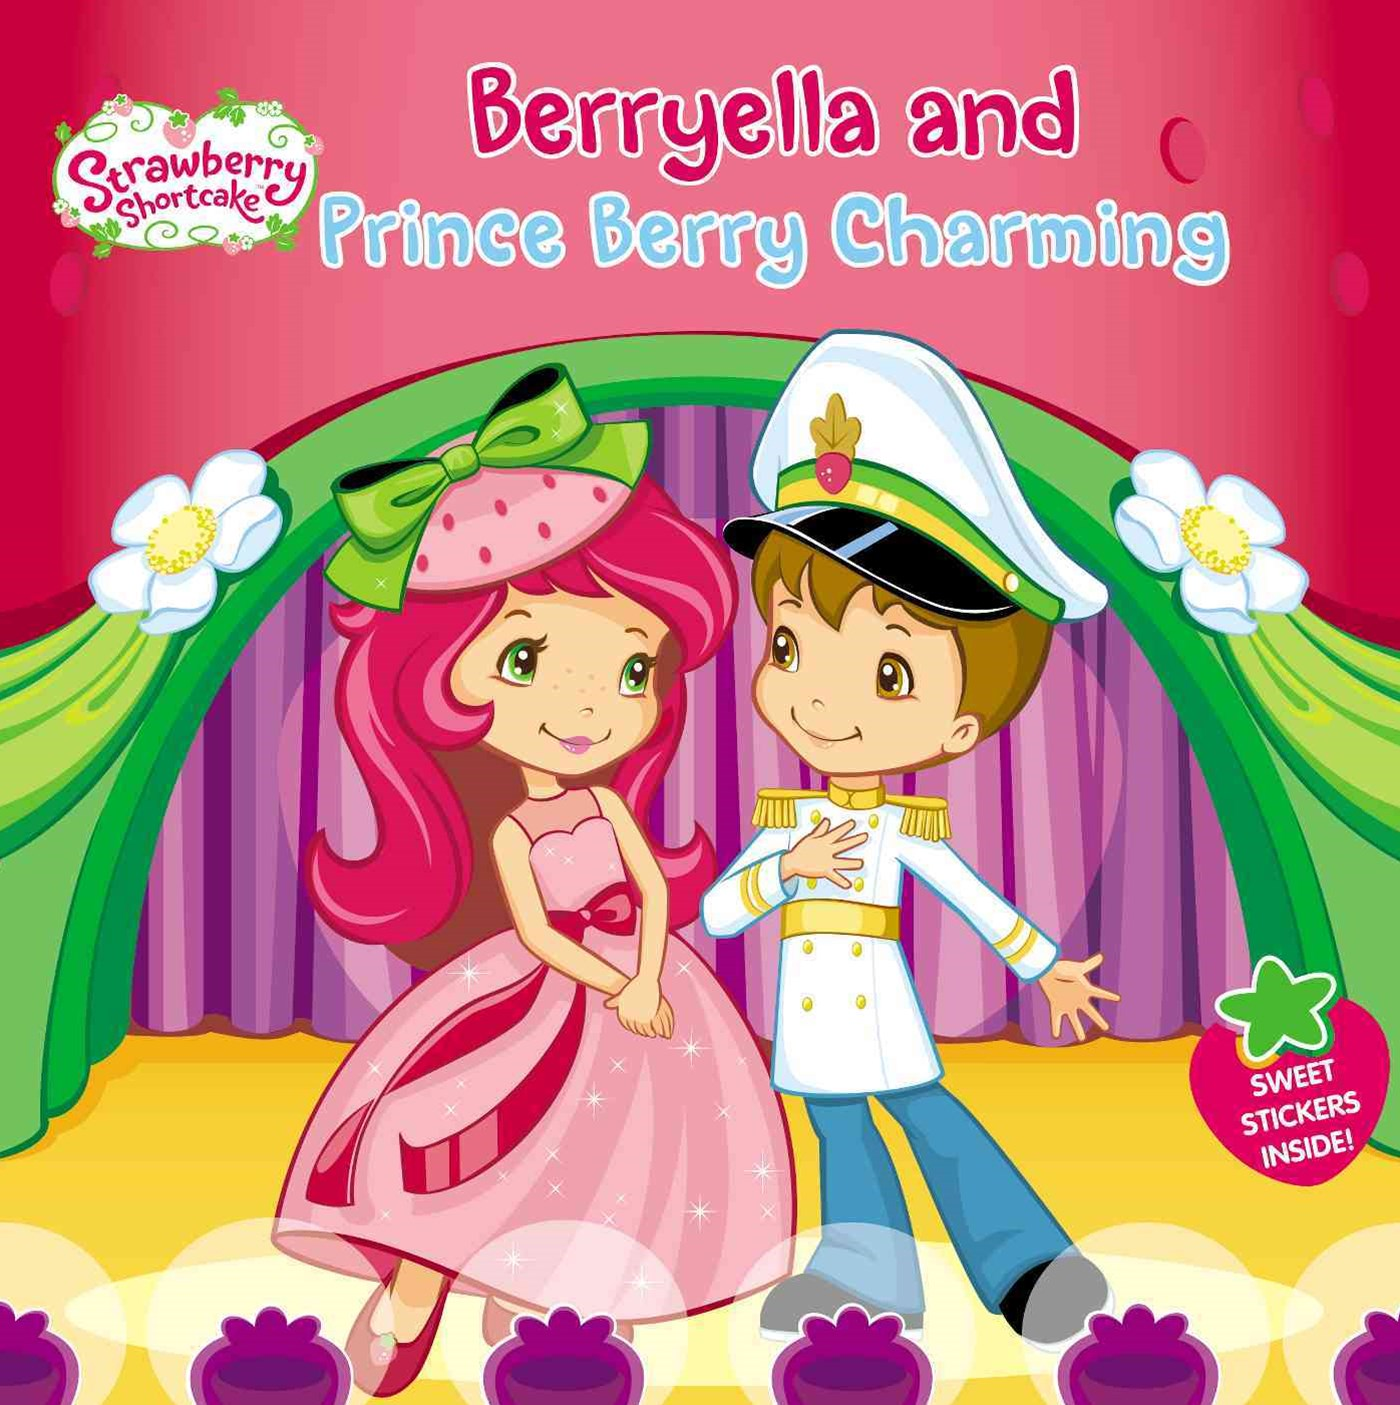 Berryella and Prince Berry Charming